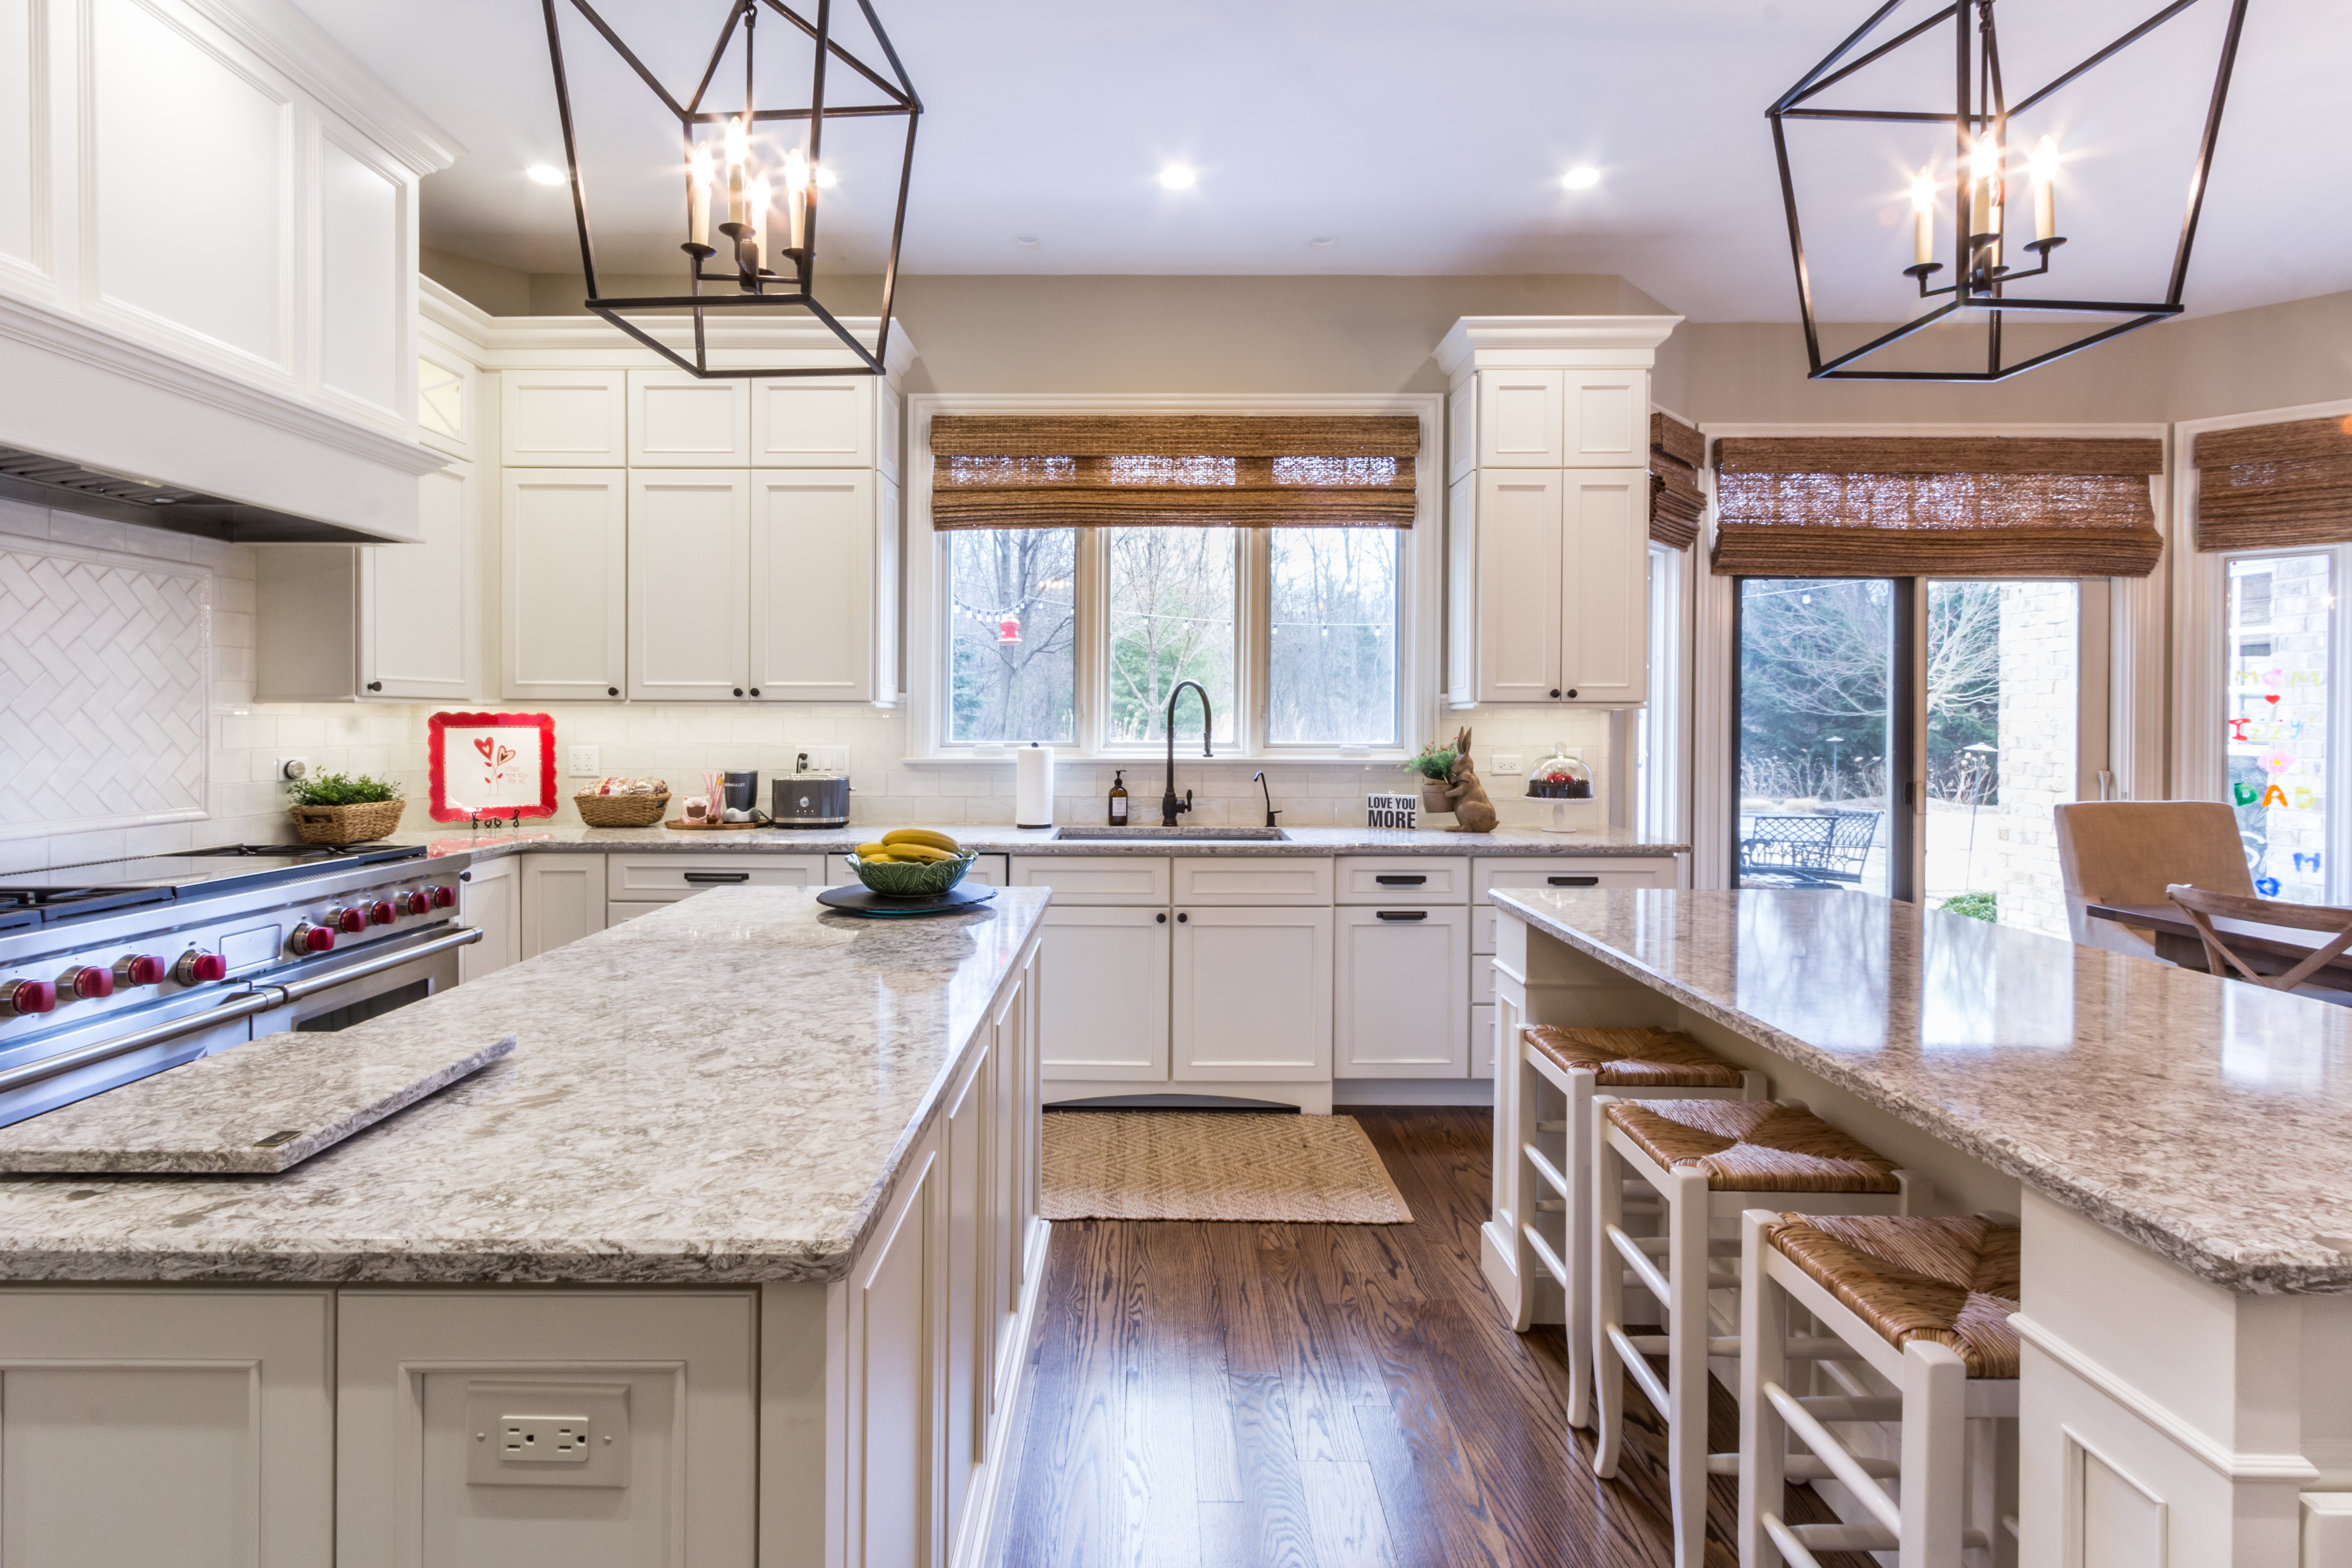 White kitchen with granite countertops, double island and metal framed pendant chandeliers.